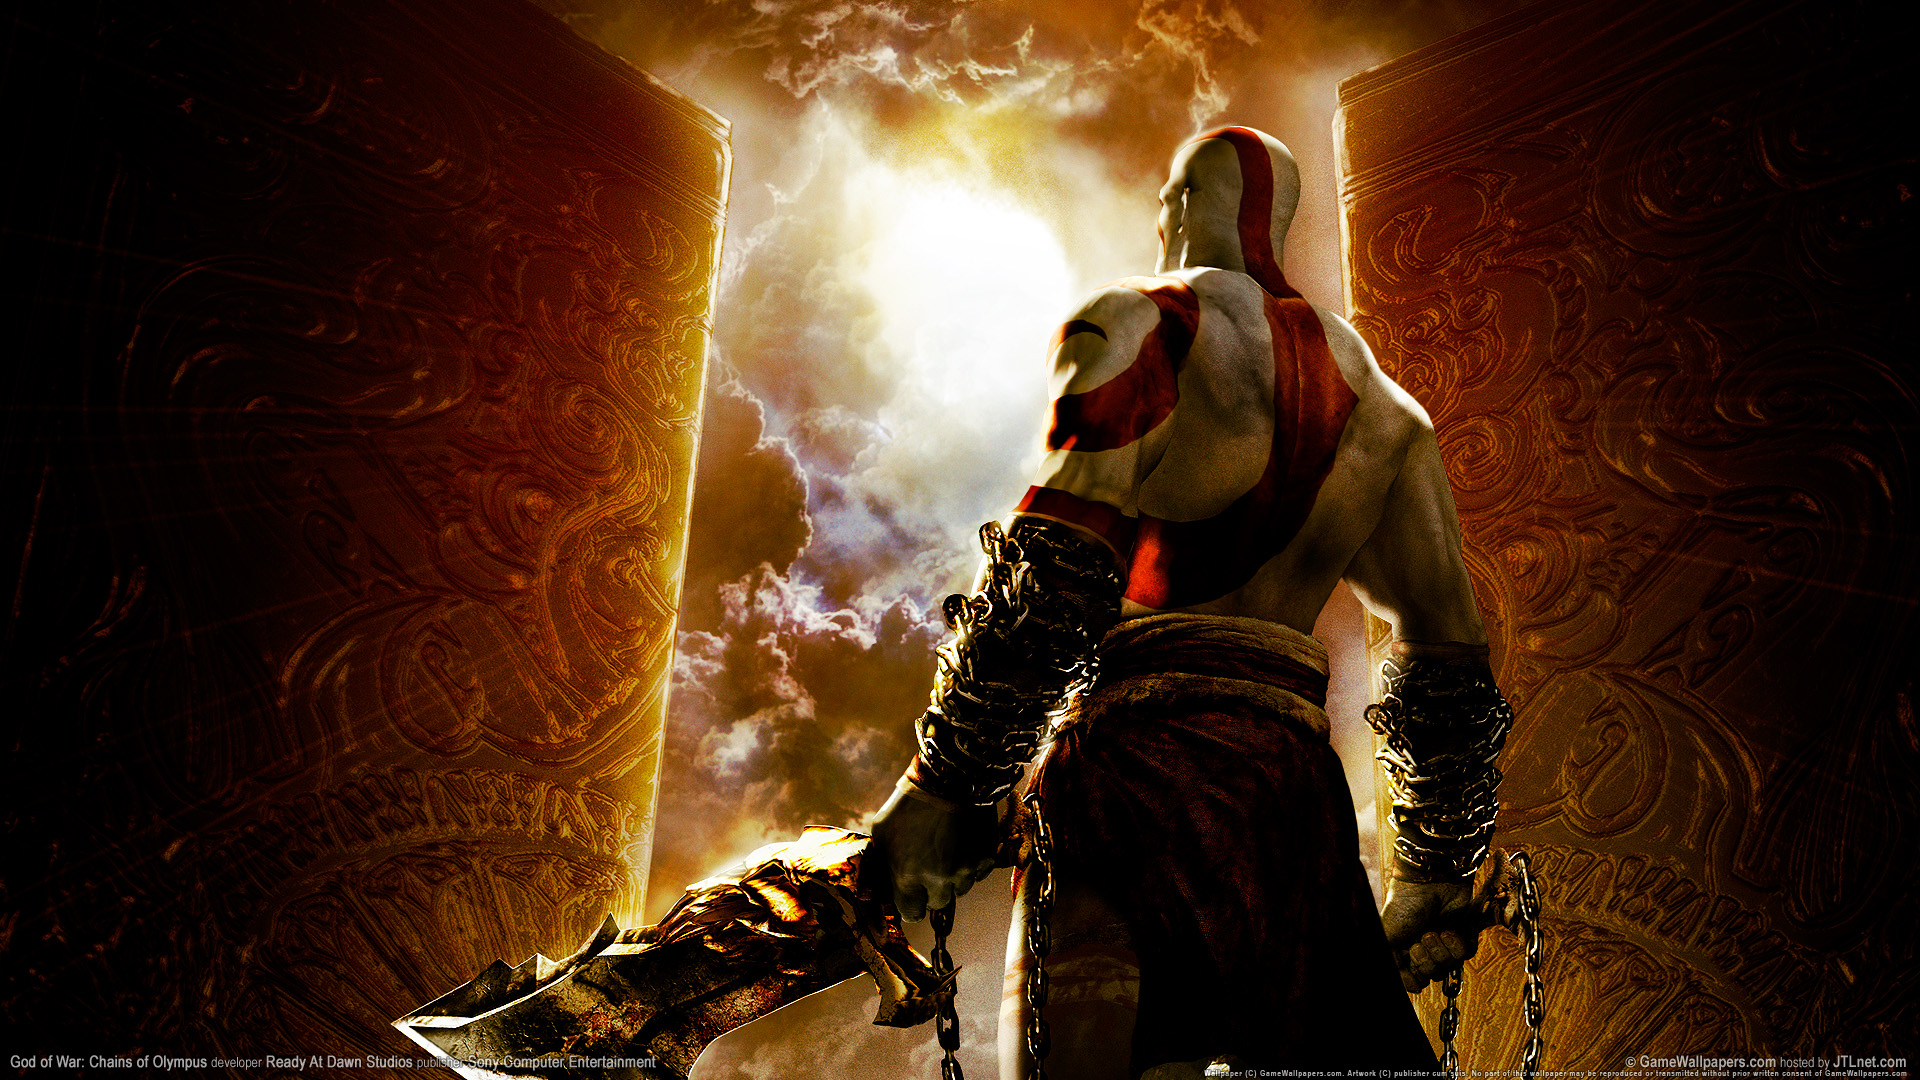 HD Wallpapers God of war chains of olympus